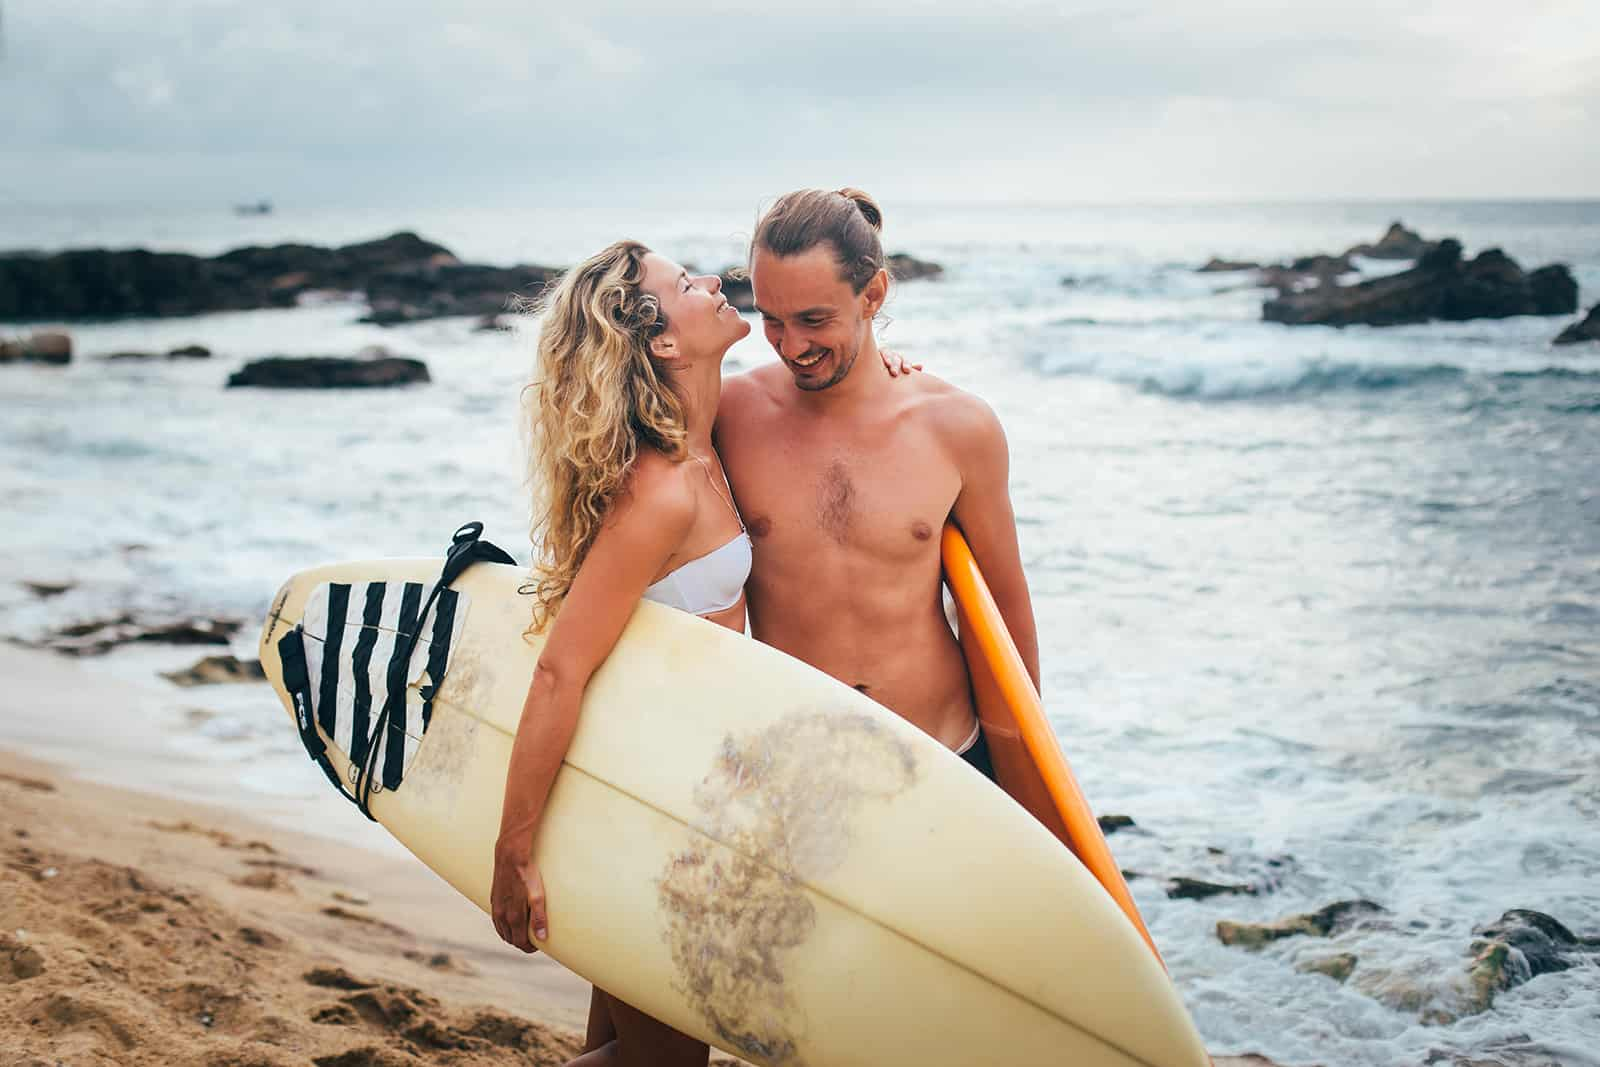 a happy couple carrying surfing boards and walking on the beach